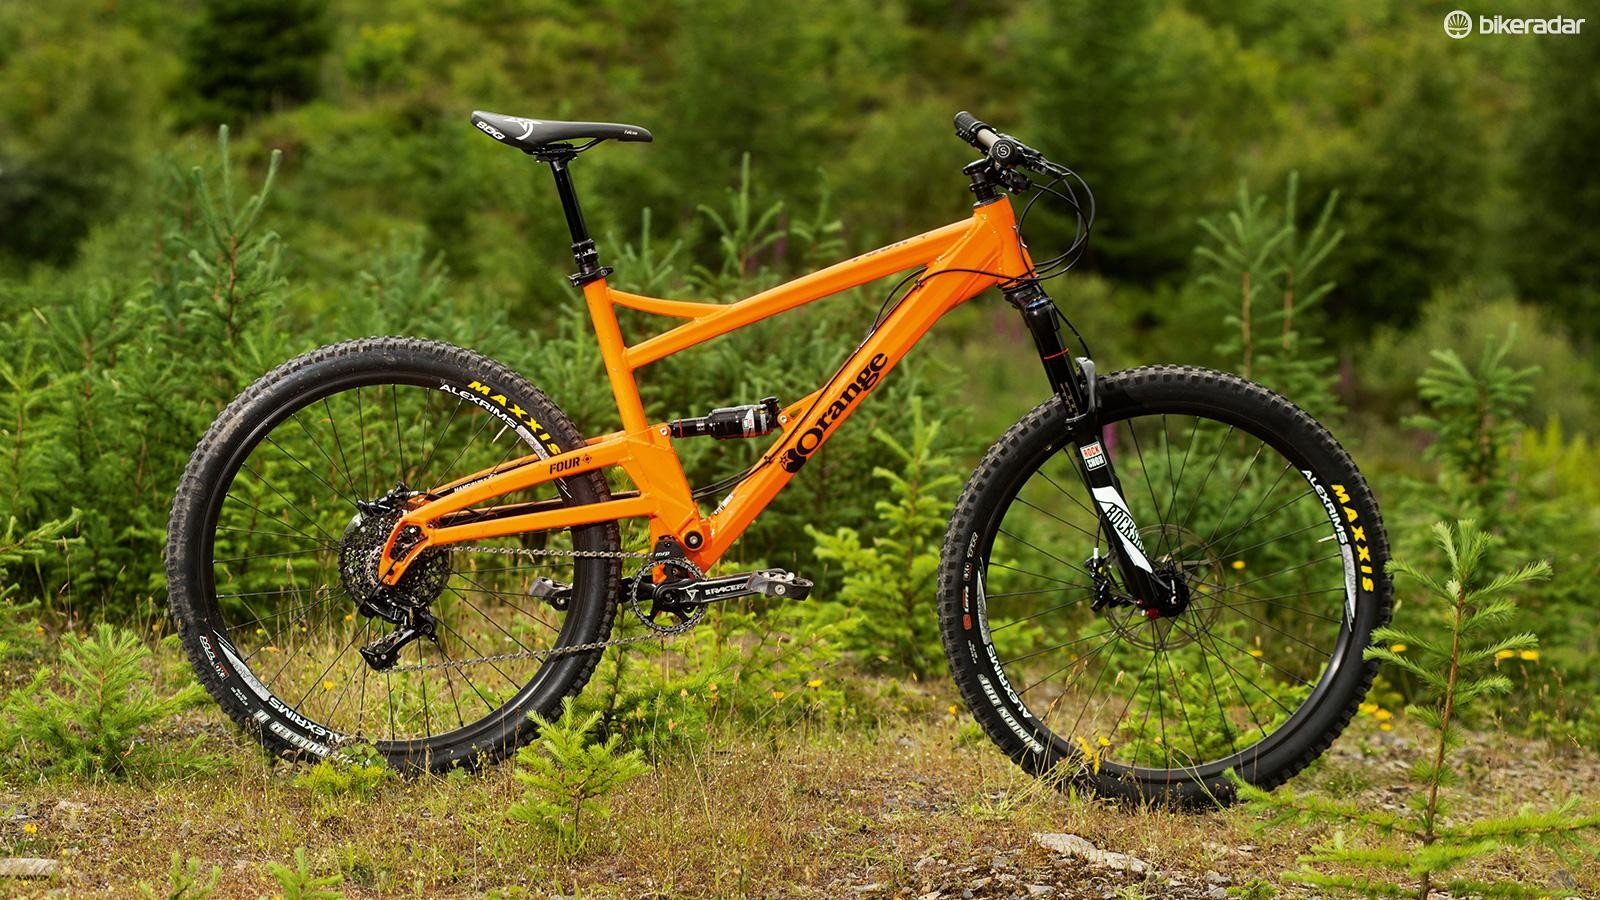 Leaner and lighter than the Five, the Four is Orange's new all-rounder trail bike